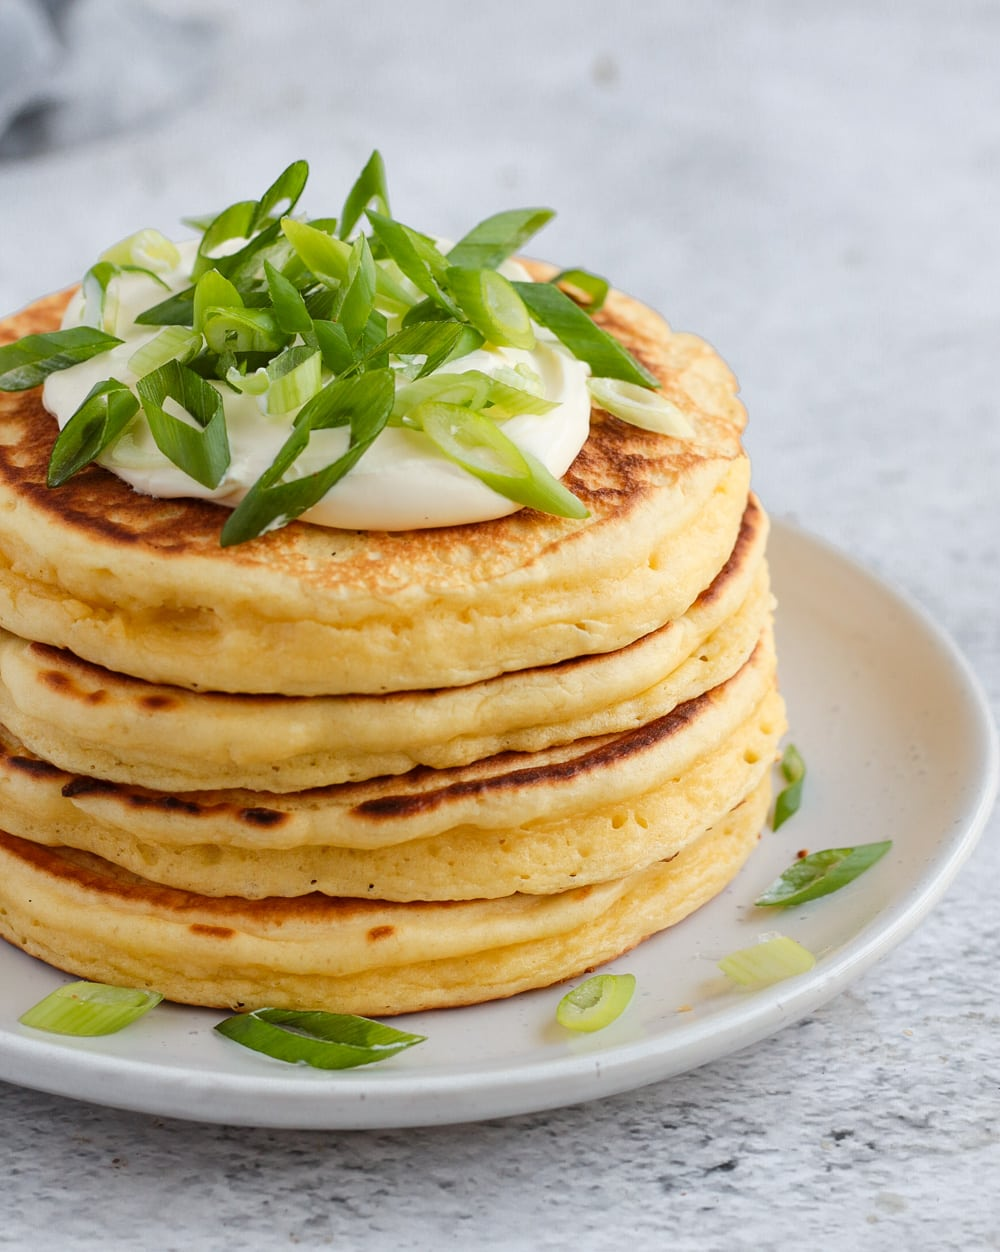 Pancake Stack topped with Sour Cream and Spring Onions.